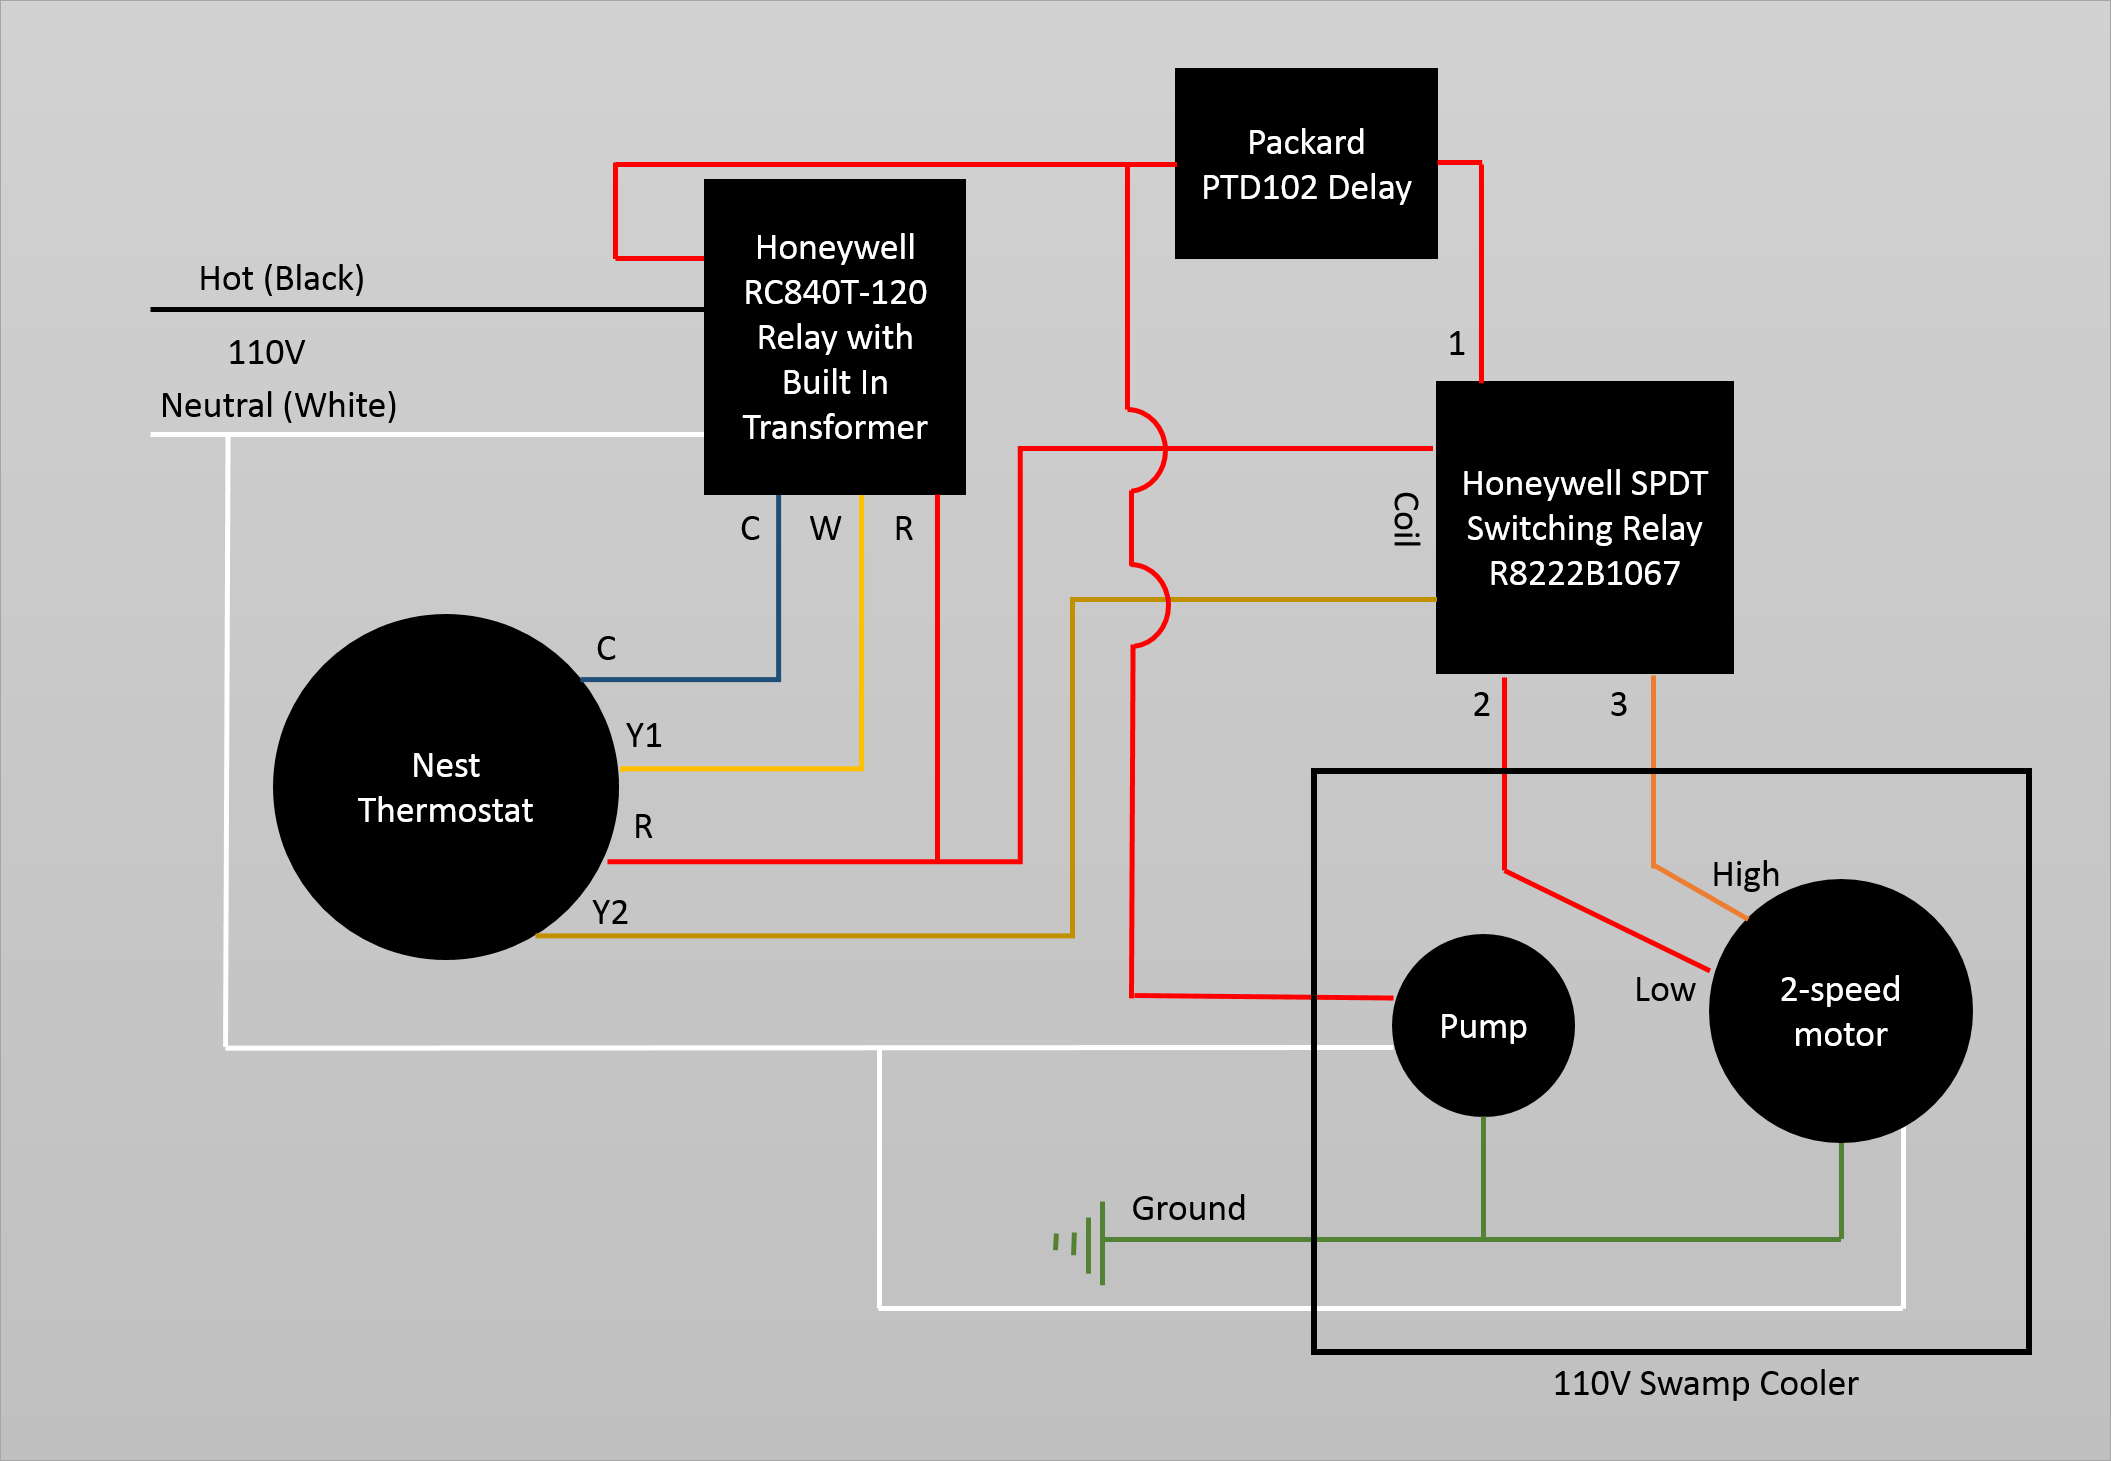 Wiring - Controlling 110V Swamp Cooler Using Nest Thermostat - Home - Nest Thermostat Custom Wiring Diagram